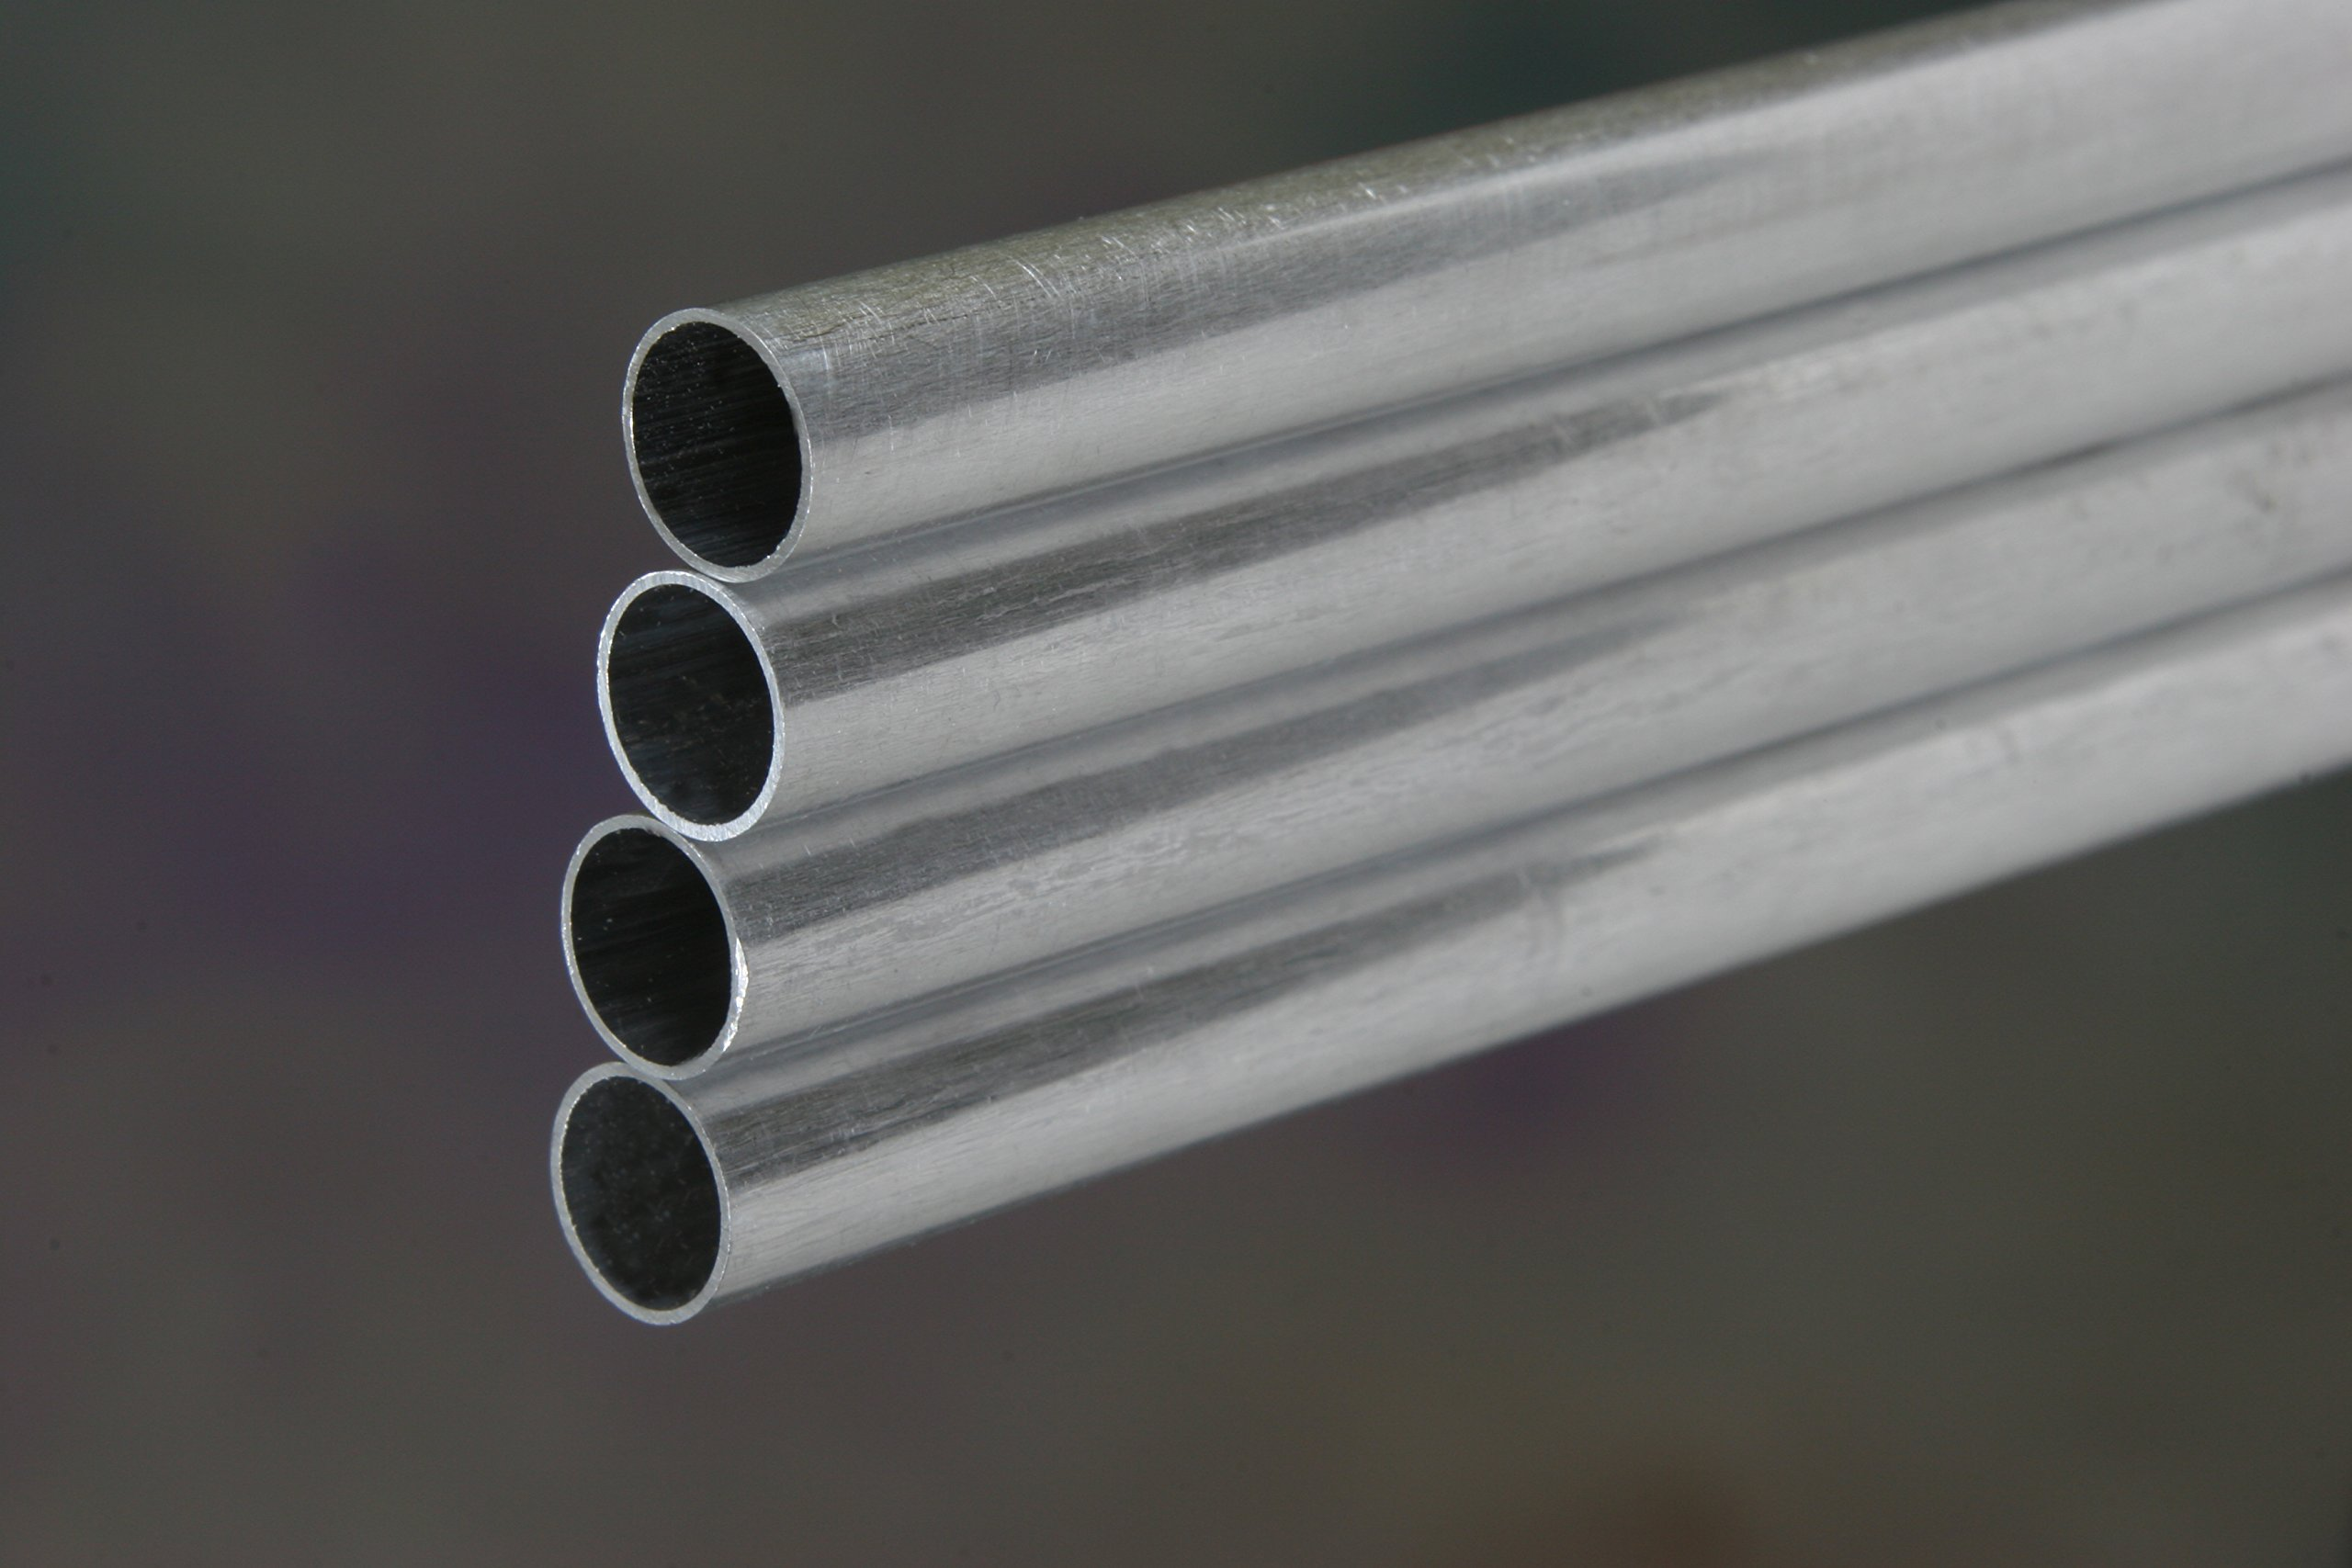 K&S Precision Metals 9315 Round Aluminum Tube, 3/8'' OD x 0.035'' Wall Thickness x 36'' Length, 4 pcs per Box, Made in USA